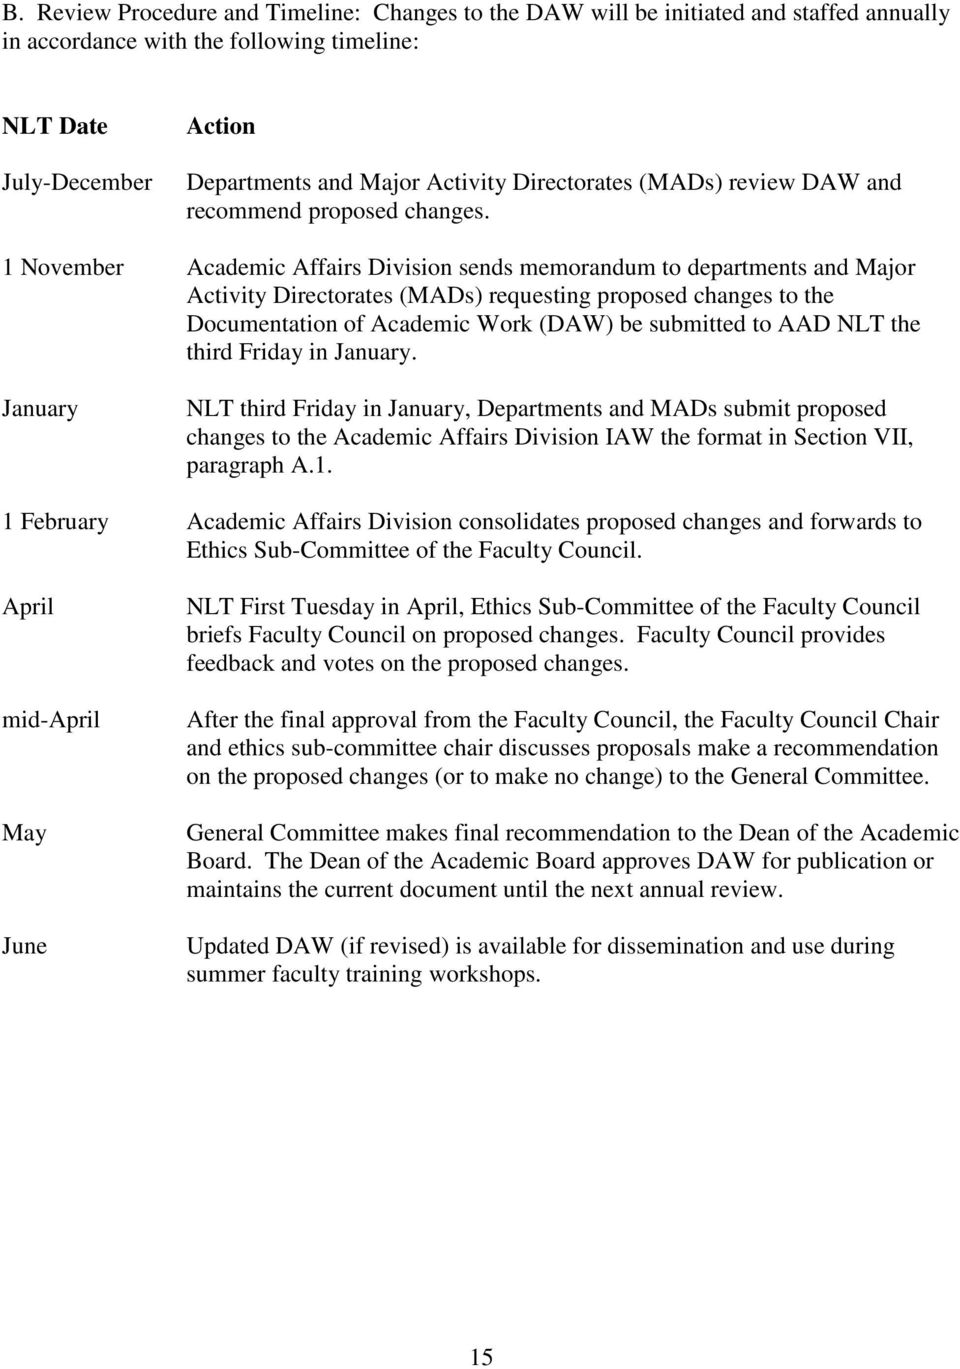 1 November Academic Affairs Division sends memorandum to departments and Major Activity Directorates (MADs) requesting proposed changes to the Documentation of Academic Work (DAW) be submitted to AAD